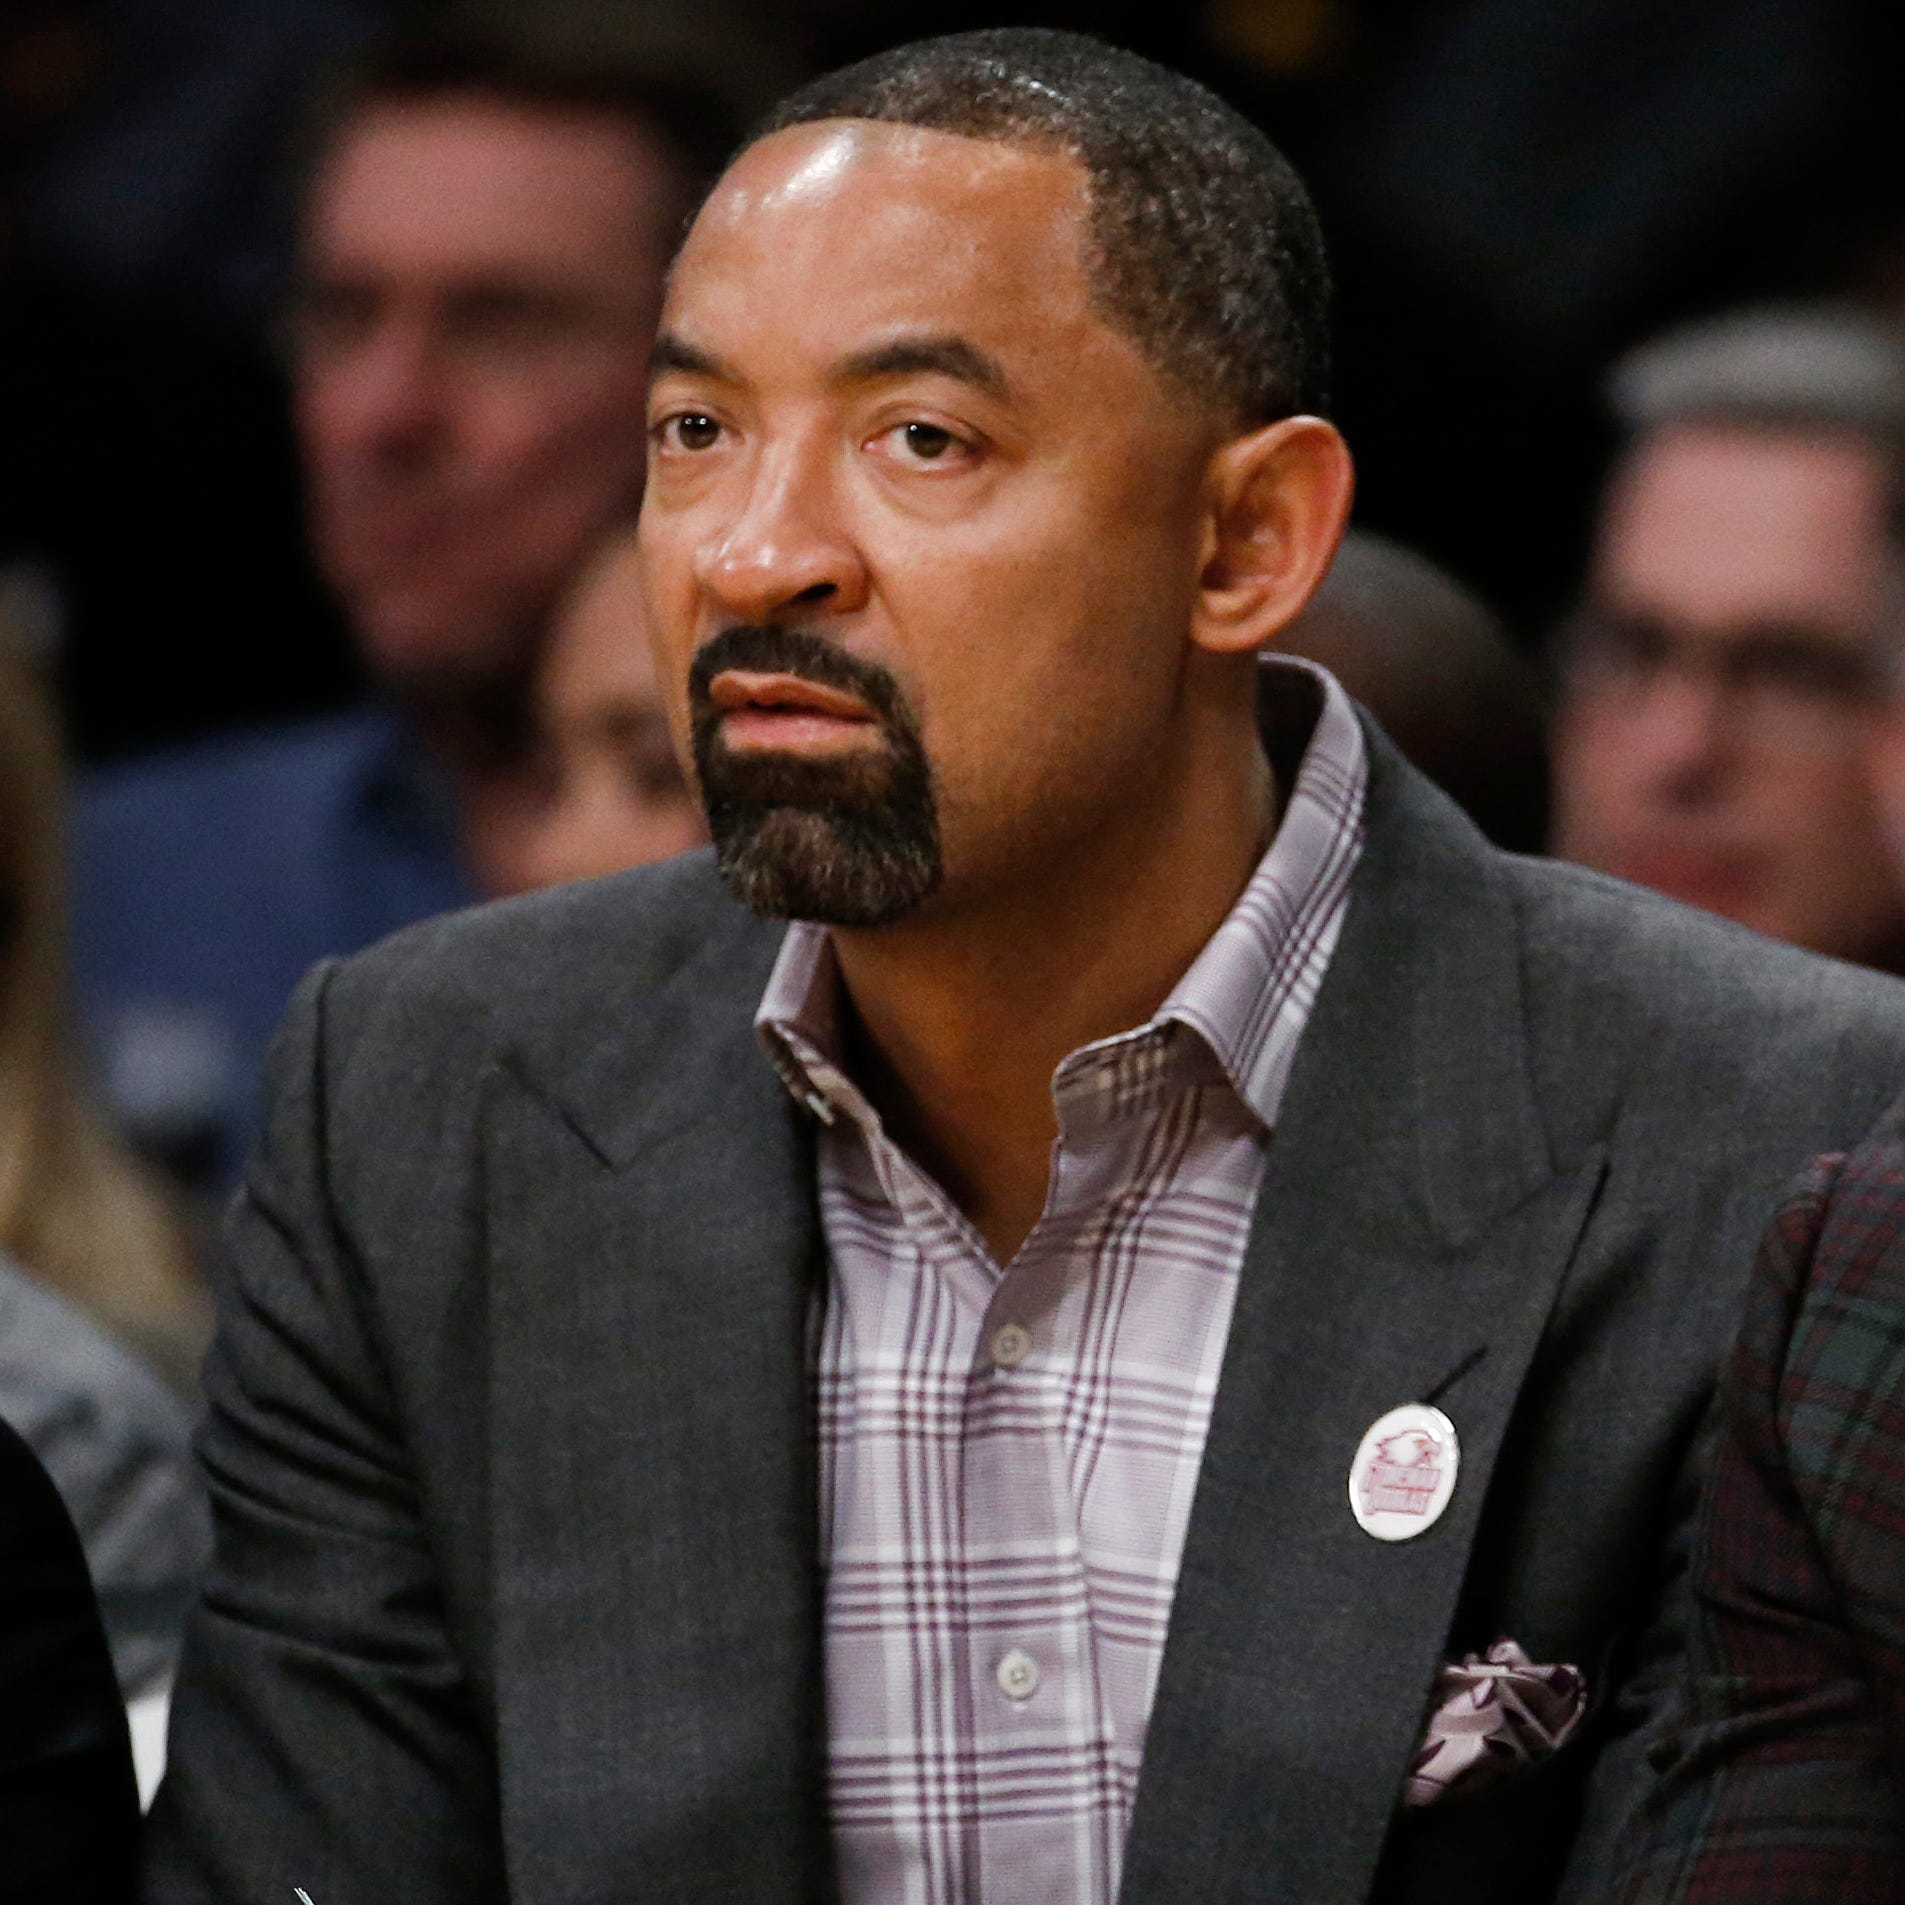 Michigan basketball hires Juwan Howard: Here's what you should know